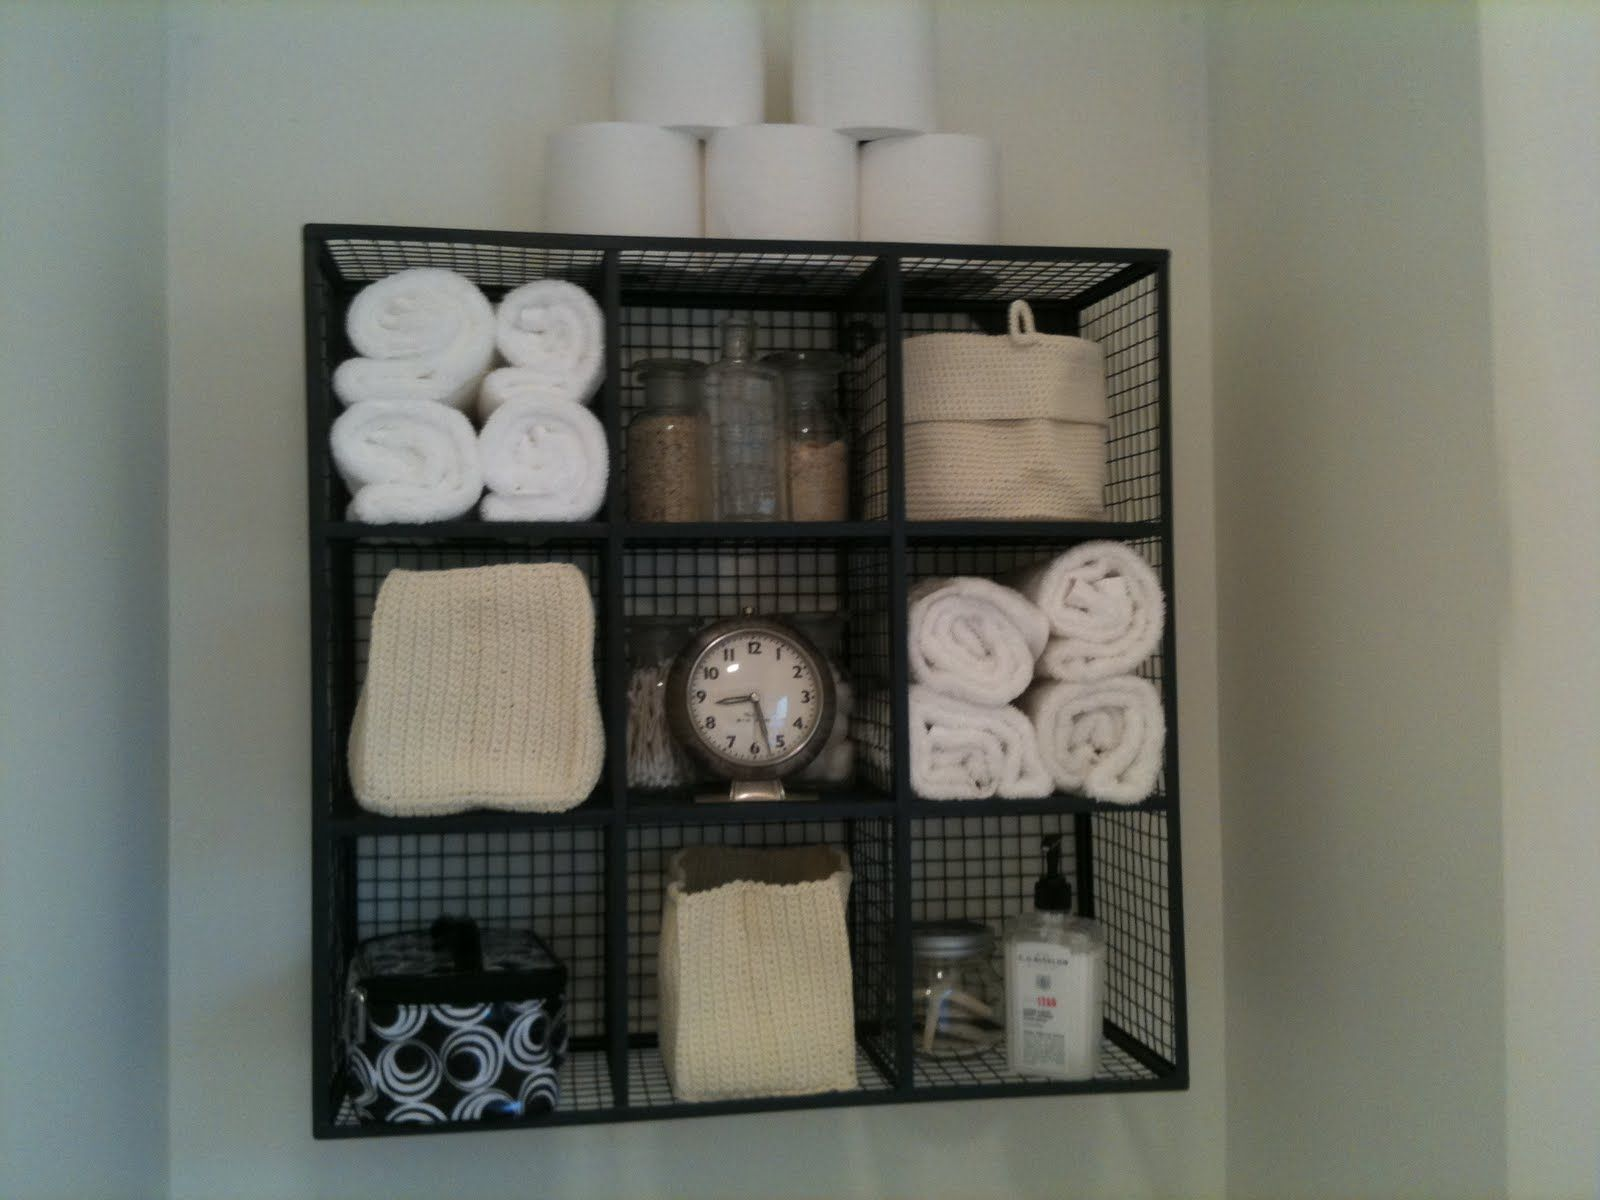 17 Brilliant Over The Toilet Storage Ideas Toilet Storage Bathroom Towel Storage Small Bathroom Storage